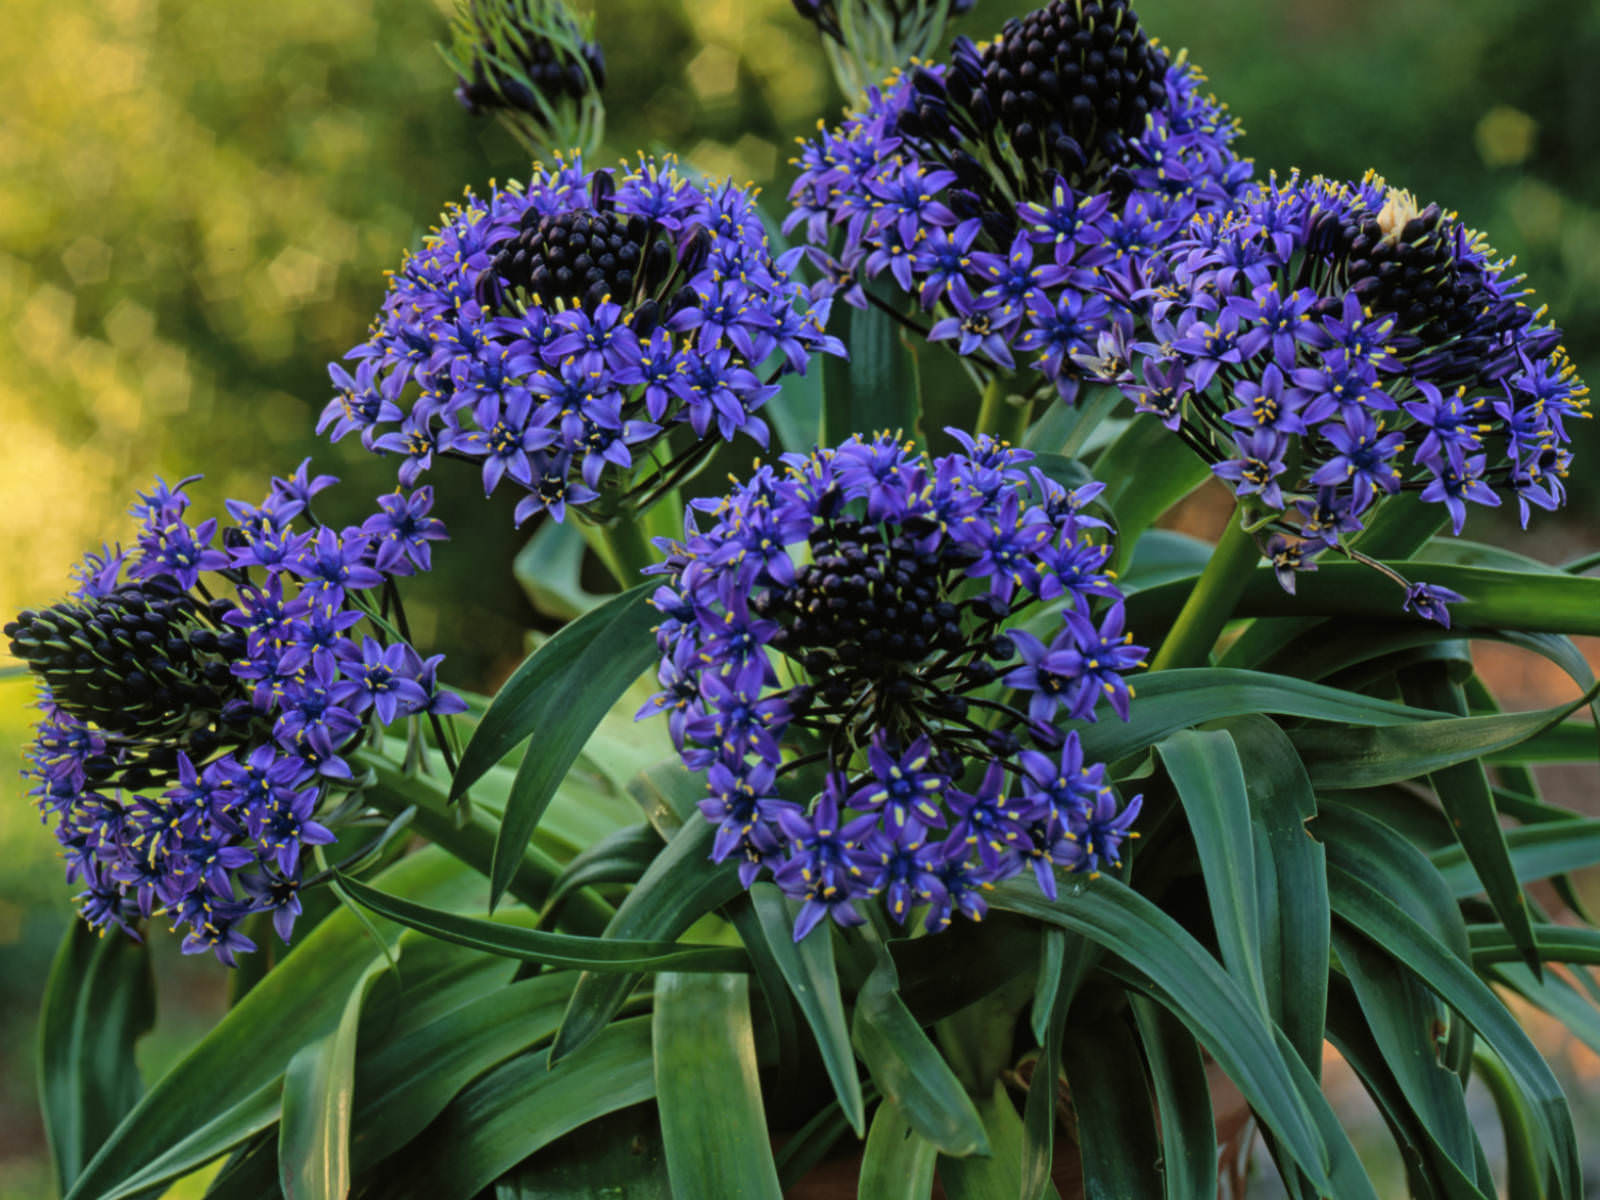 Scilla peruviana peruvian lily world of flowering plants each flower is blue up to 08 inch 2 cm in diameter with six tepals bulb is up to 31 inches 8 cm in diameter white with a covering of brown scales izmirmasajfo Gallery